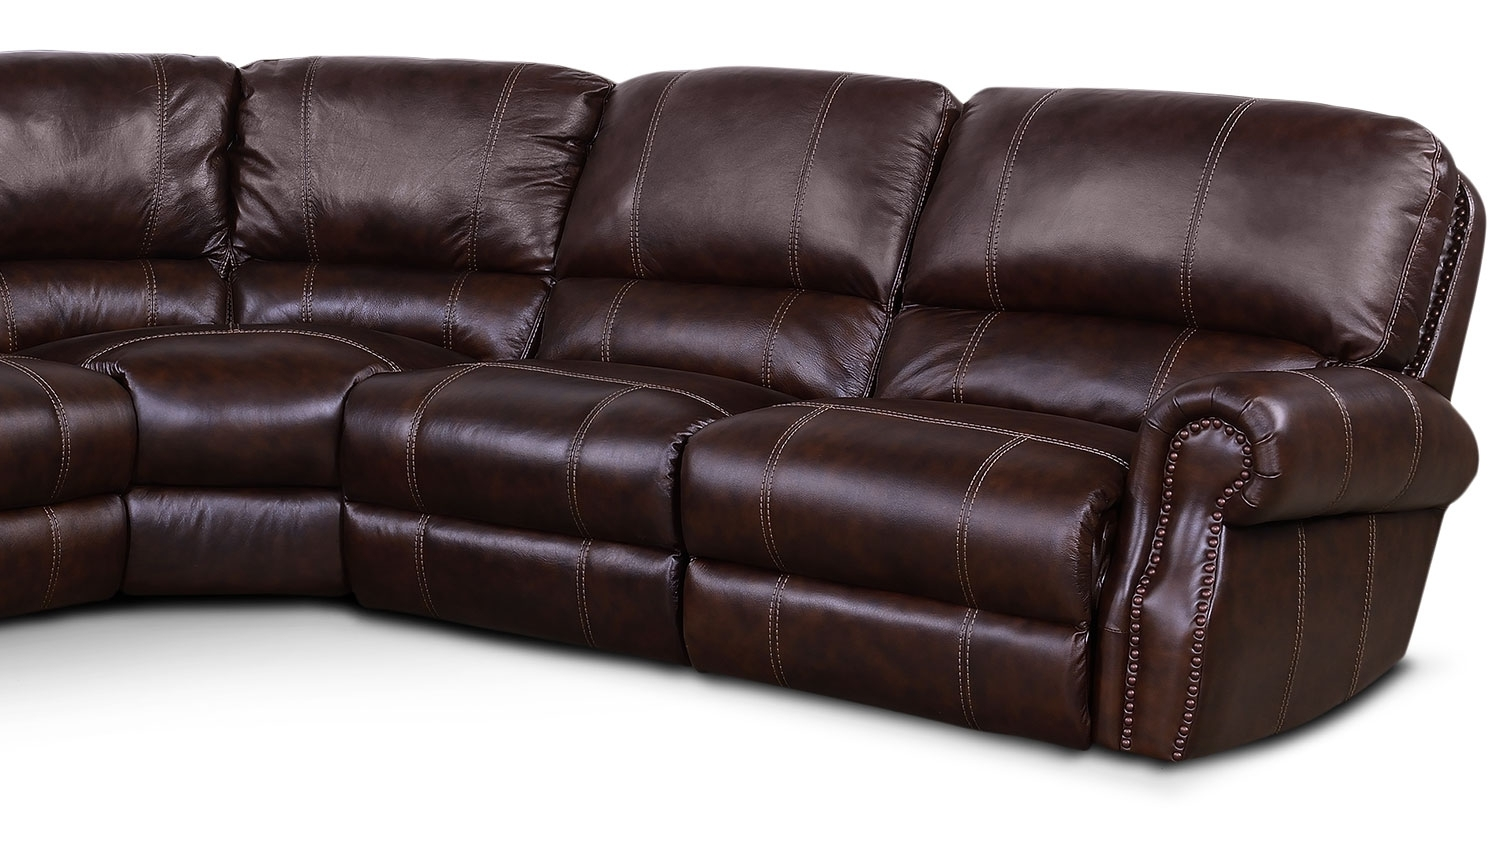 Dartmouth 6-Piece Power Reclining Sectional W/ Left-Facing Chaise throughout Norfolk Chocolate 3 Piece Sectionals With Raf Chaise (Image 9 of 30)